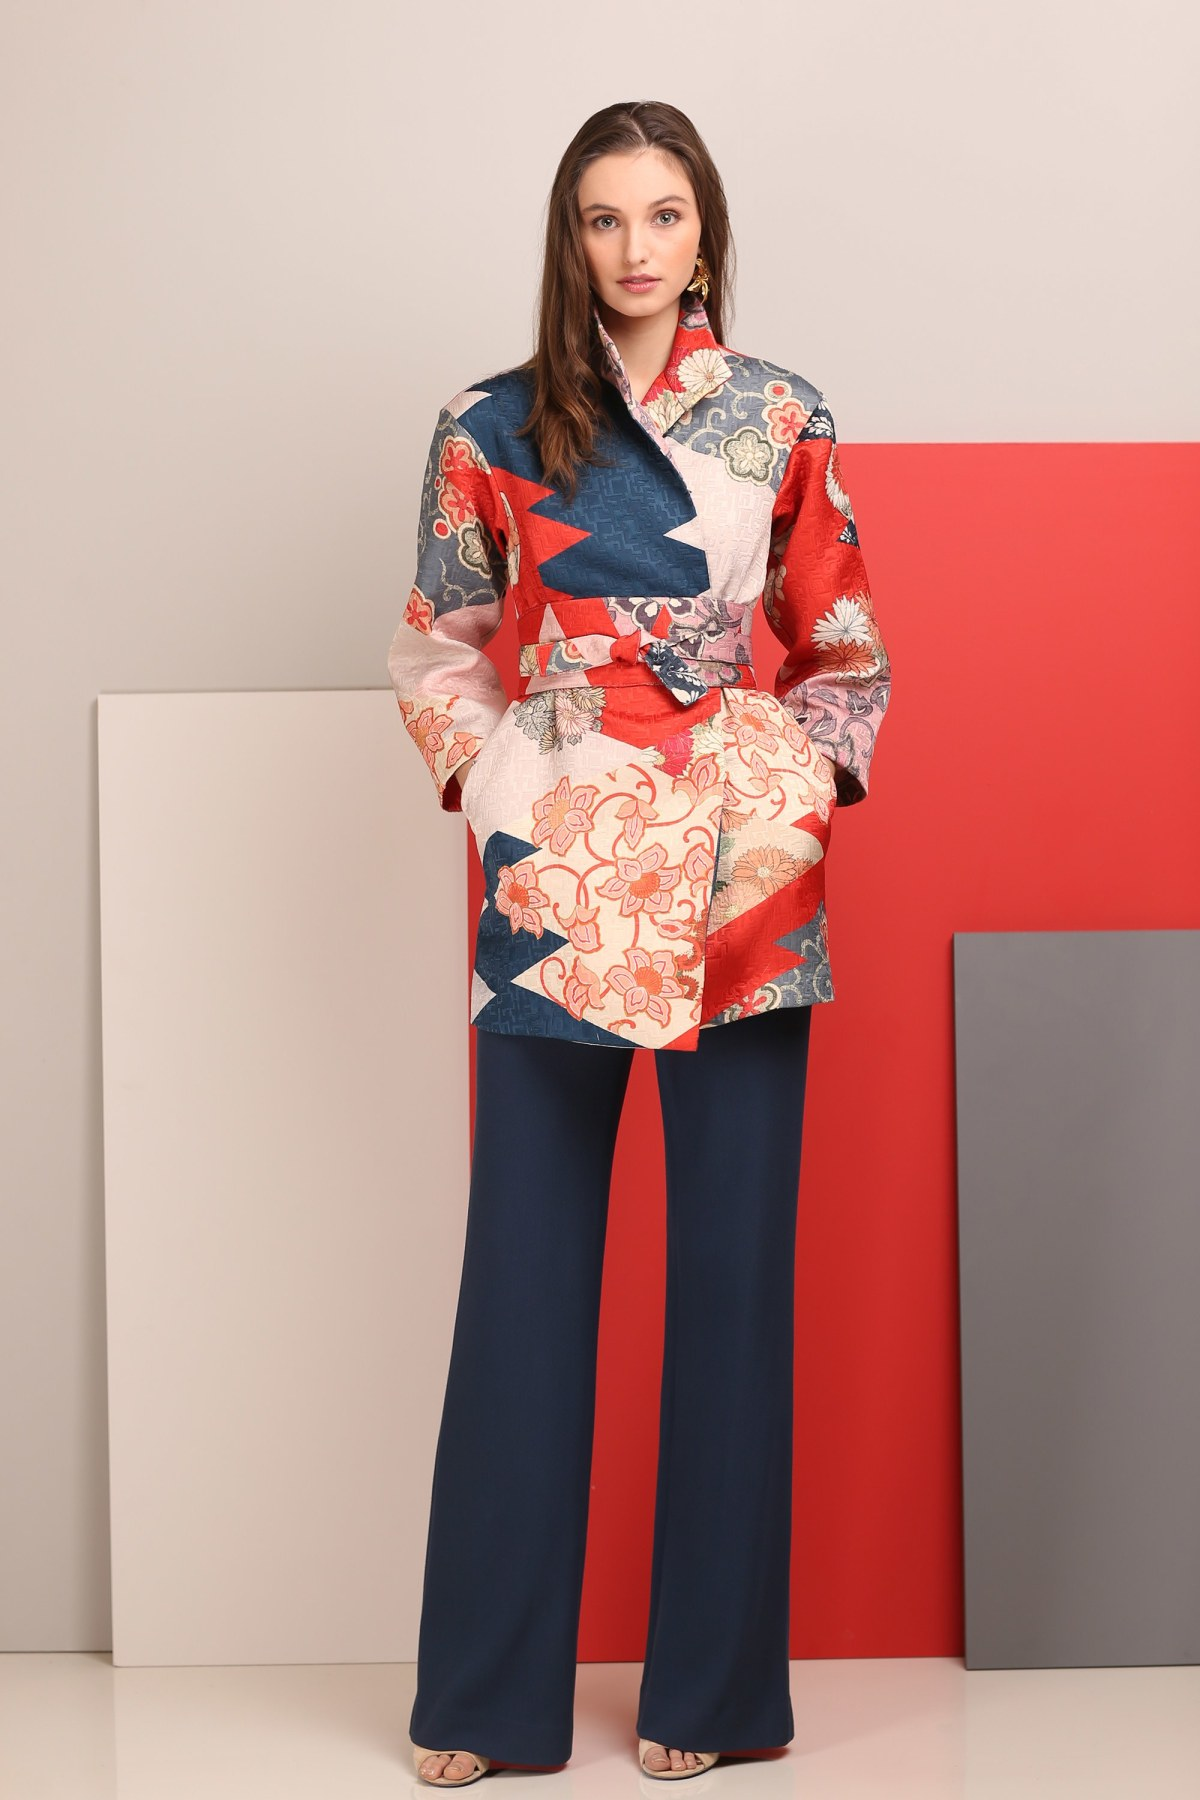 josie-natori-pre-fall-2017-fashion-show-the-impression-03